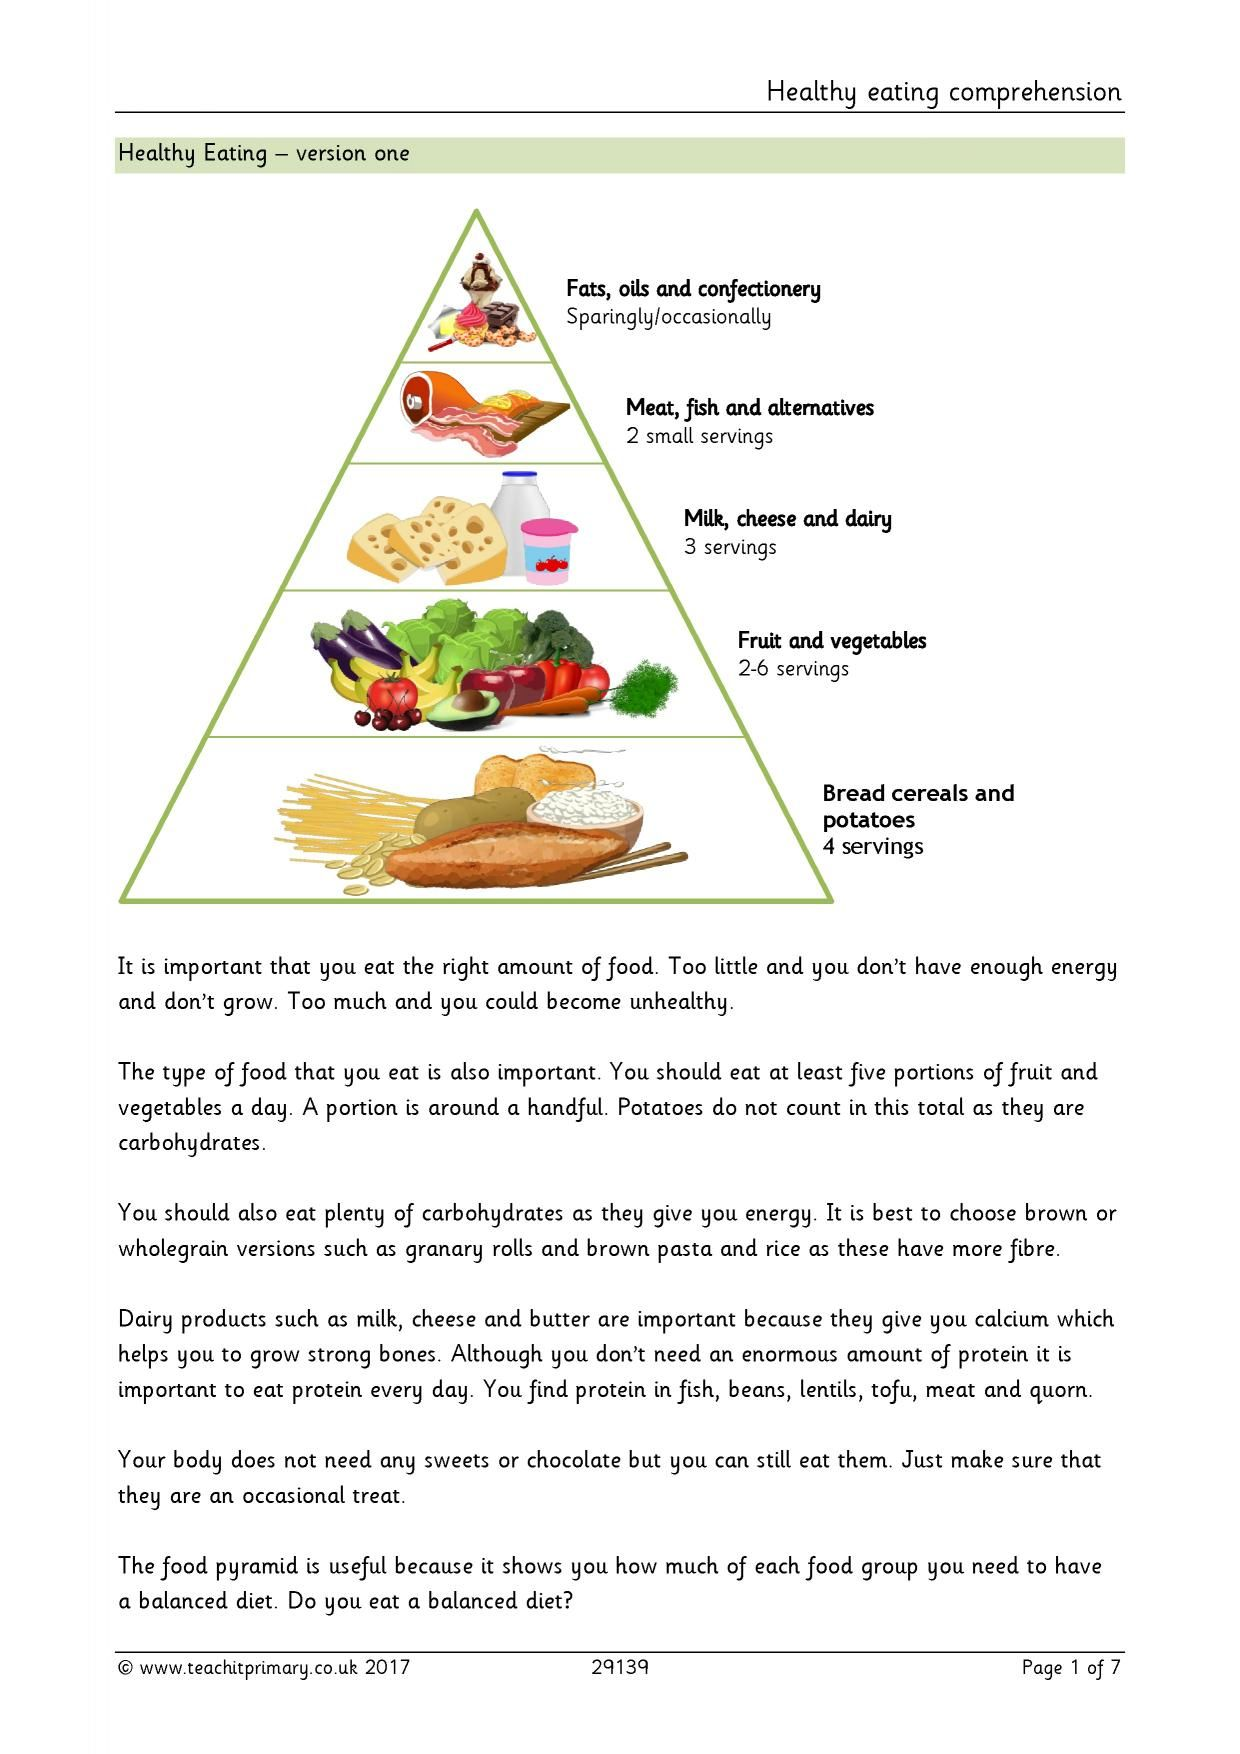 Healthy Eating Comprehension In